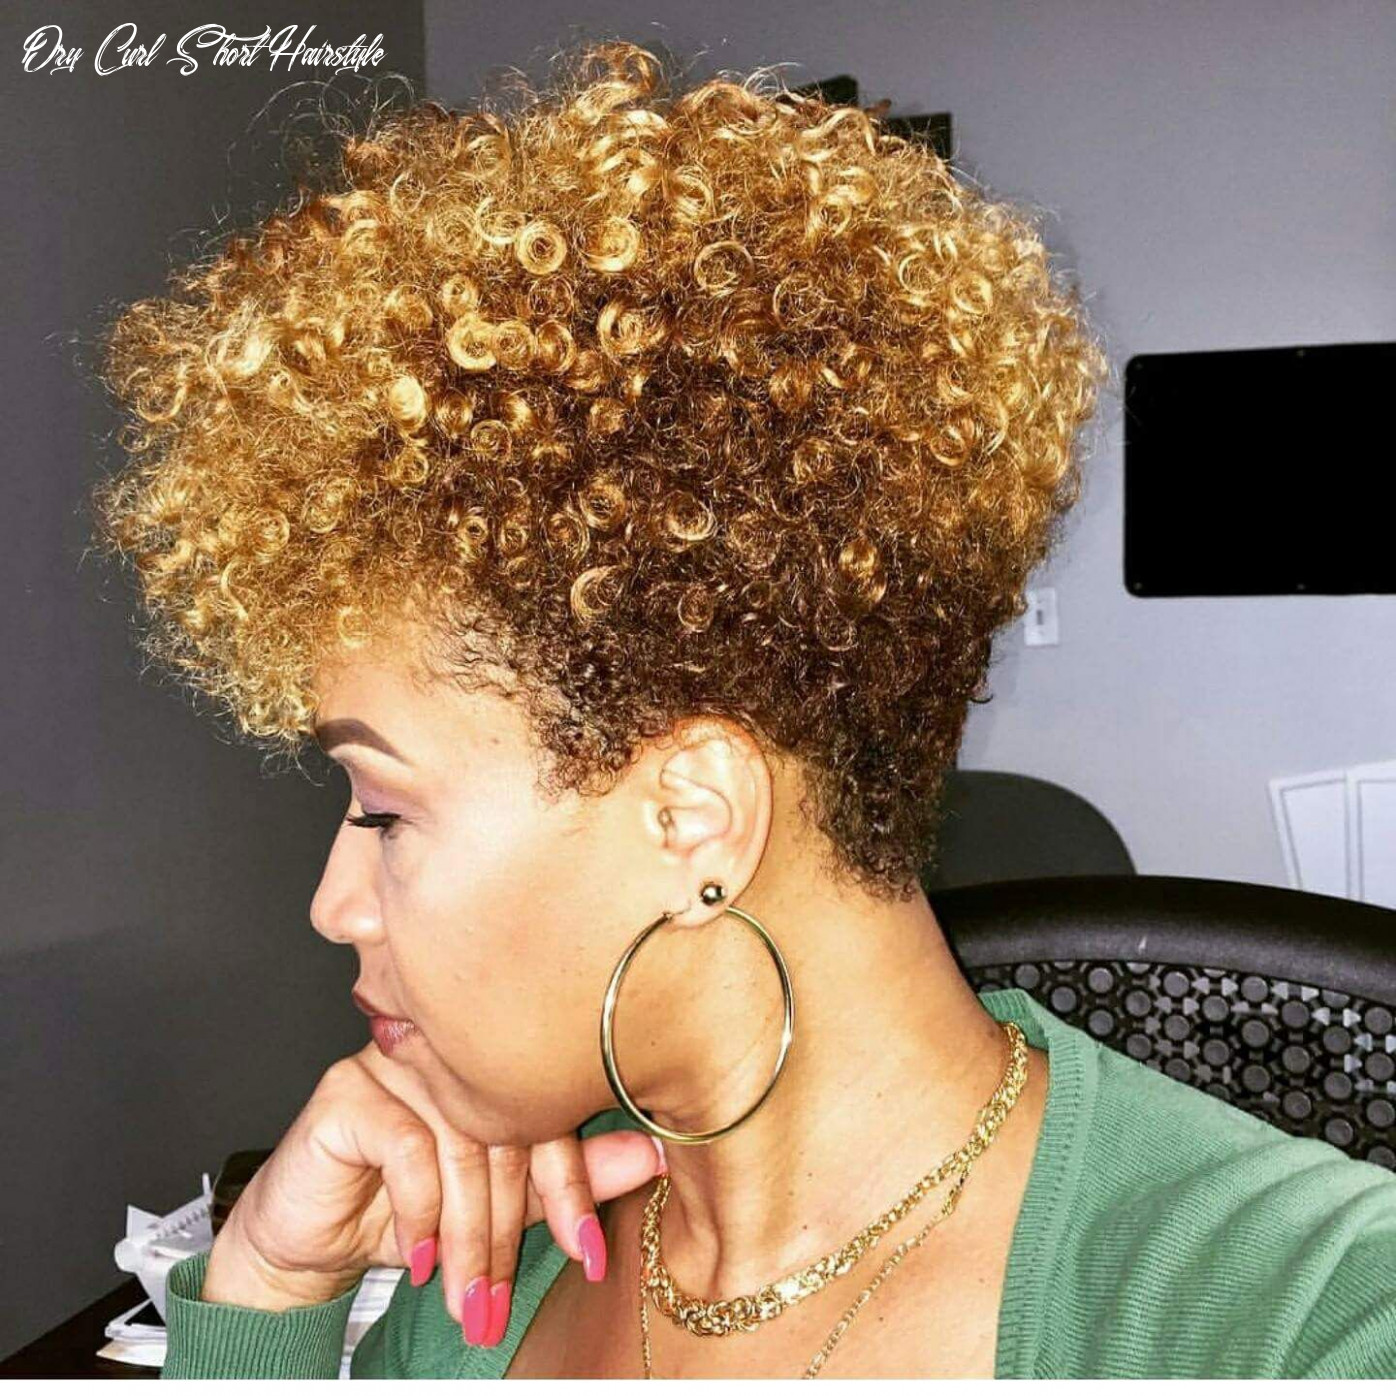 Pin on hot short hairstyles dry curl short hairstyle